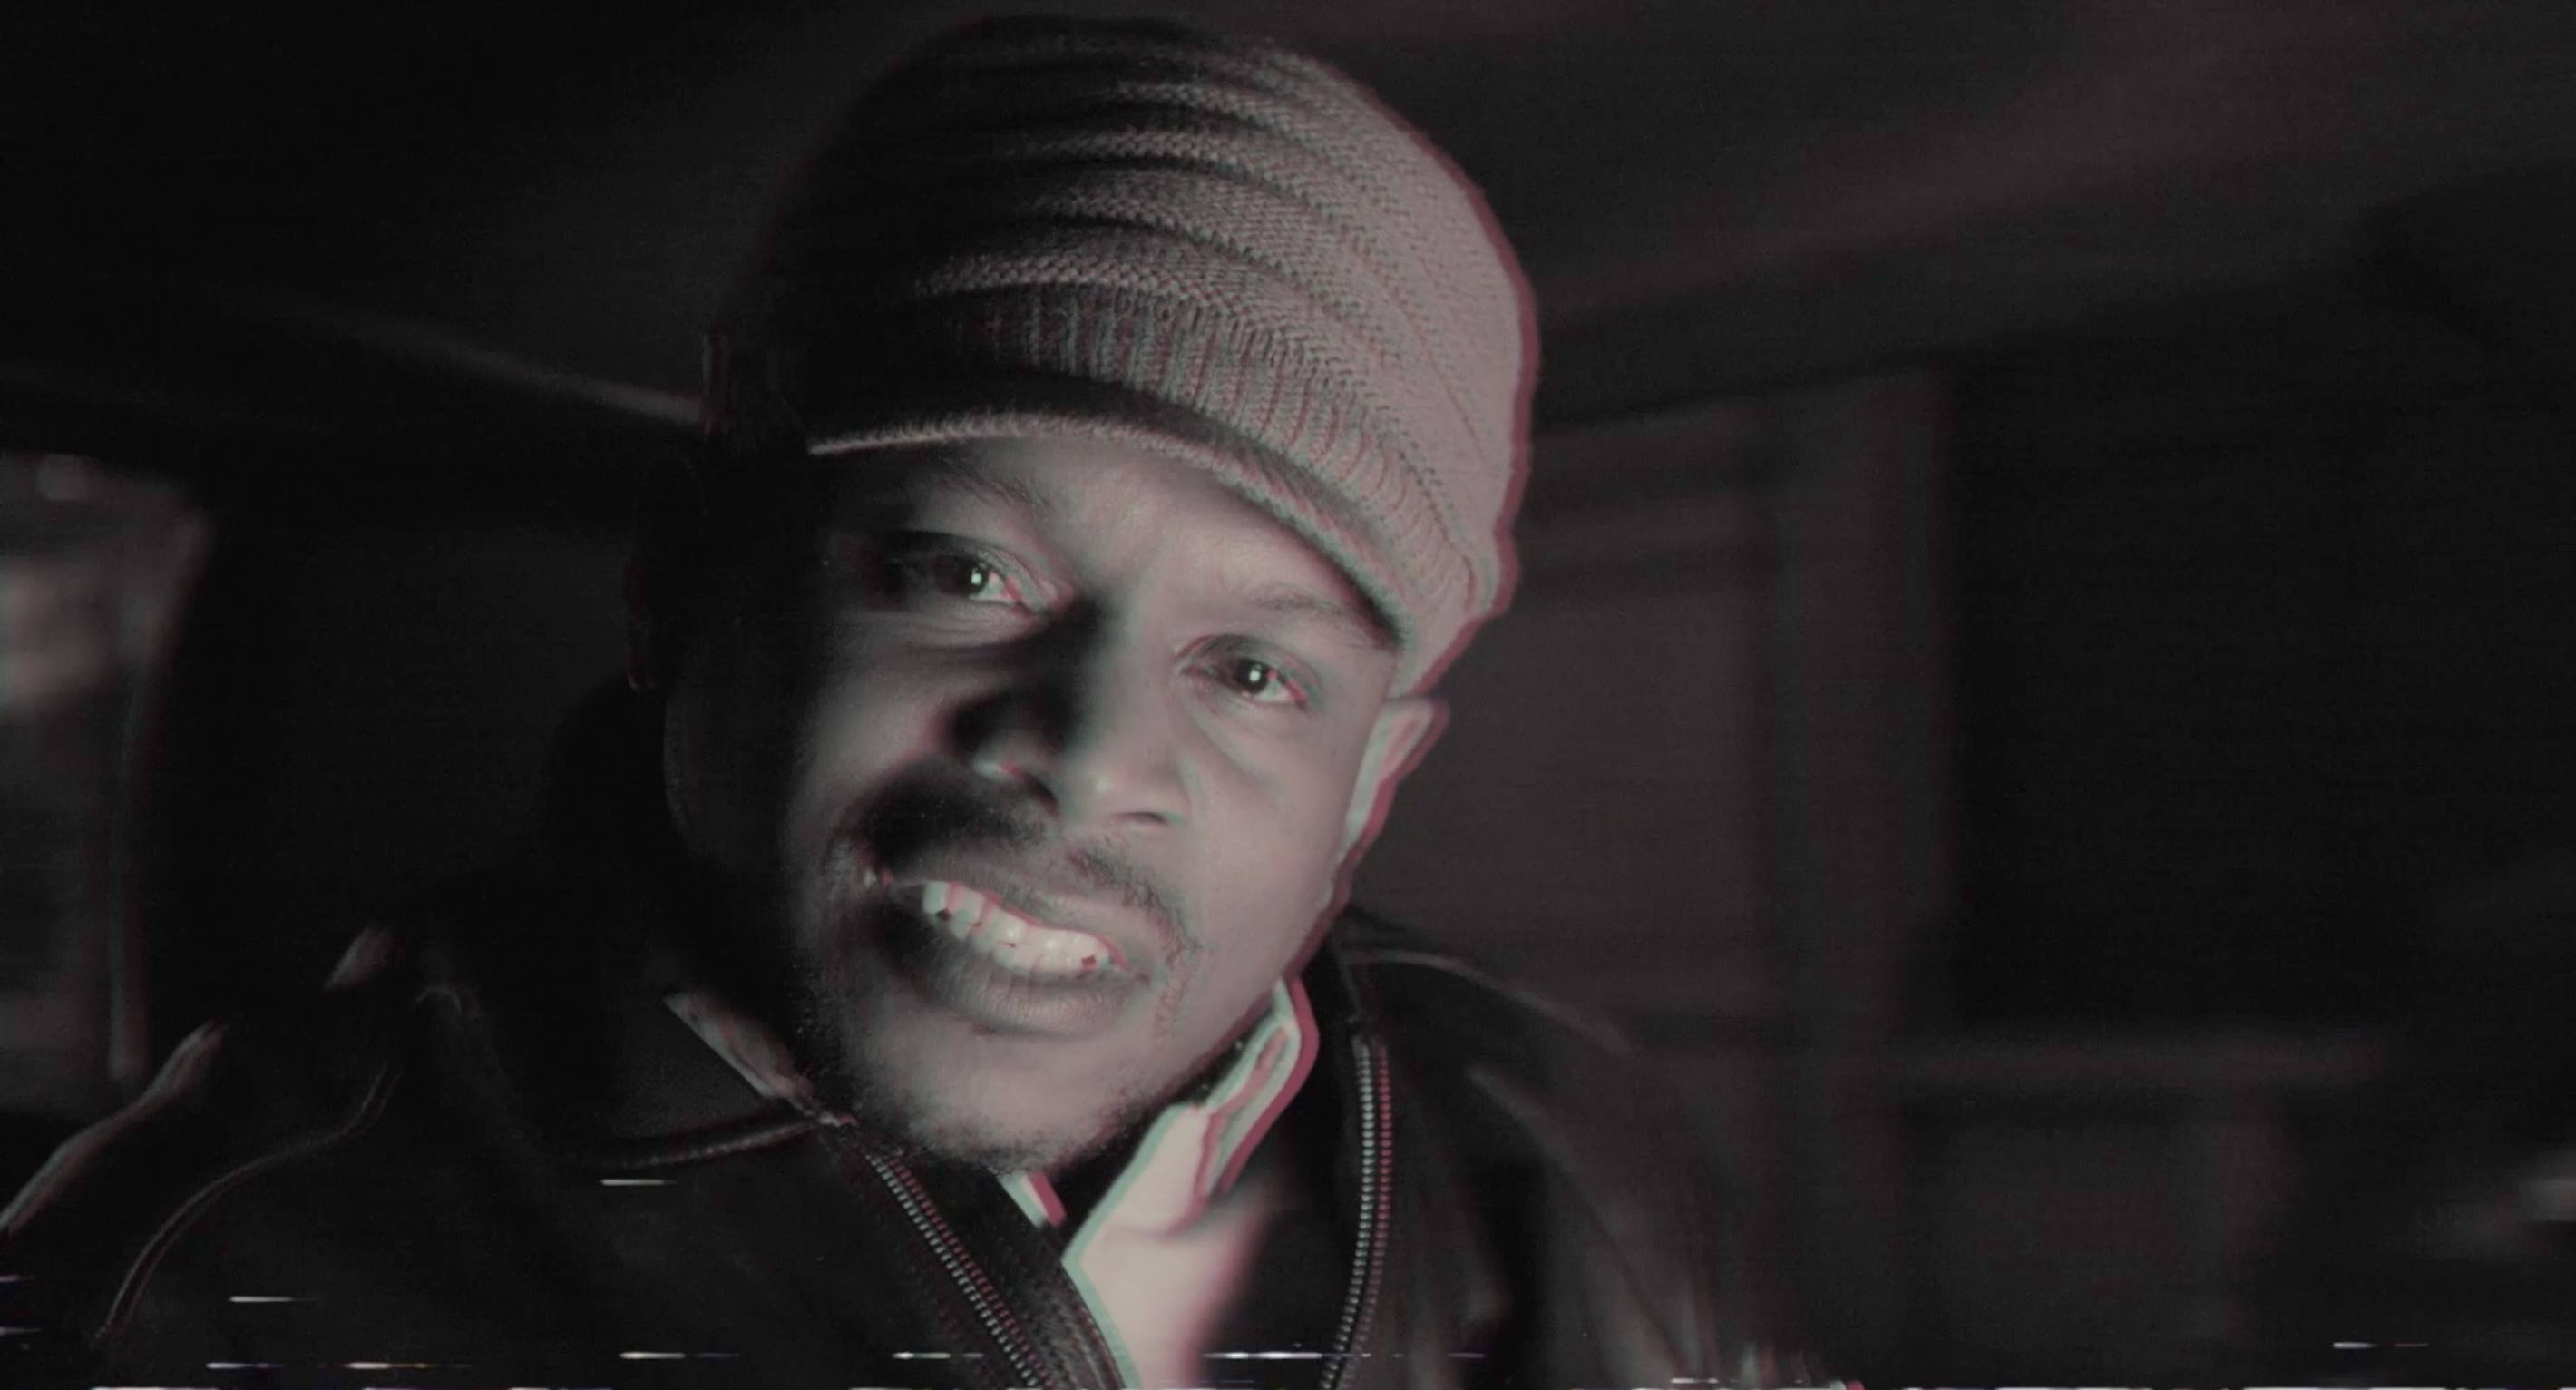 Sway Calloway and Kevin Liles link up for some mogul talk in episode 7 of 'Behind The Breaks.' Watch more episodes at TheBreaks.VH1.com.